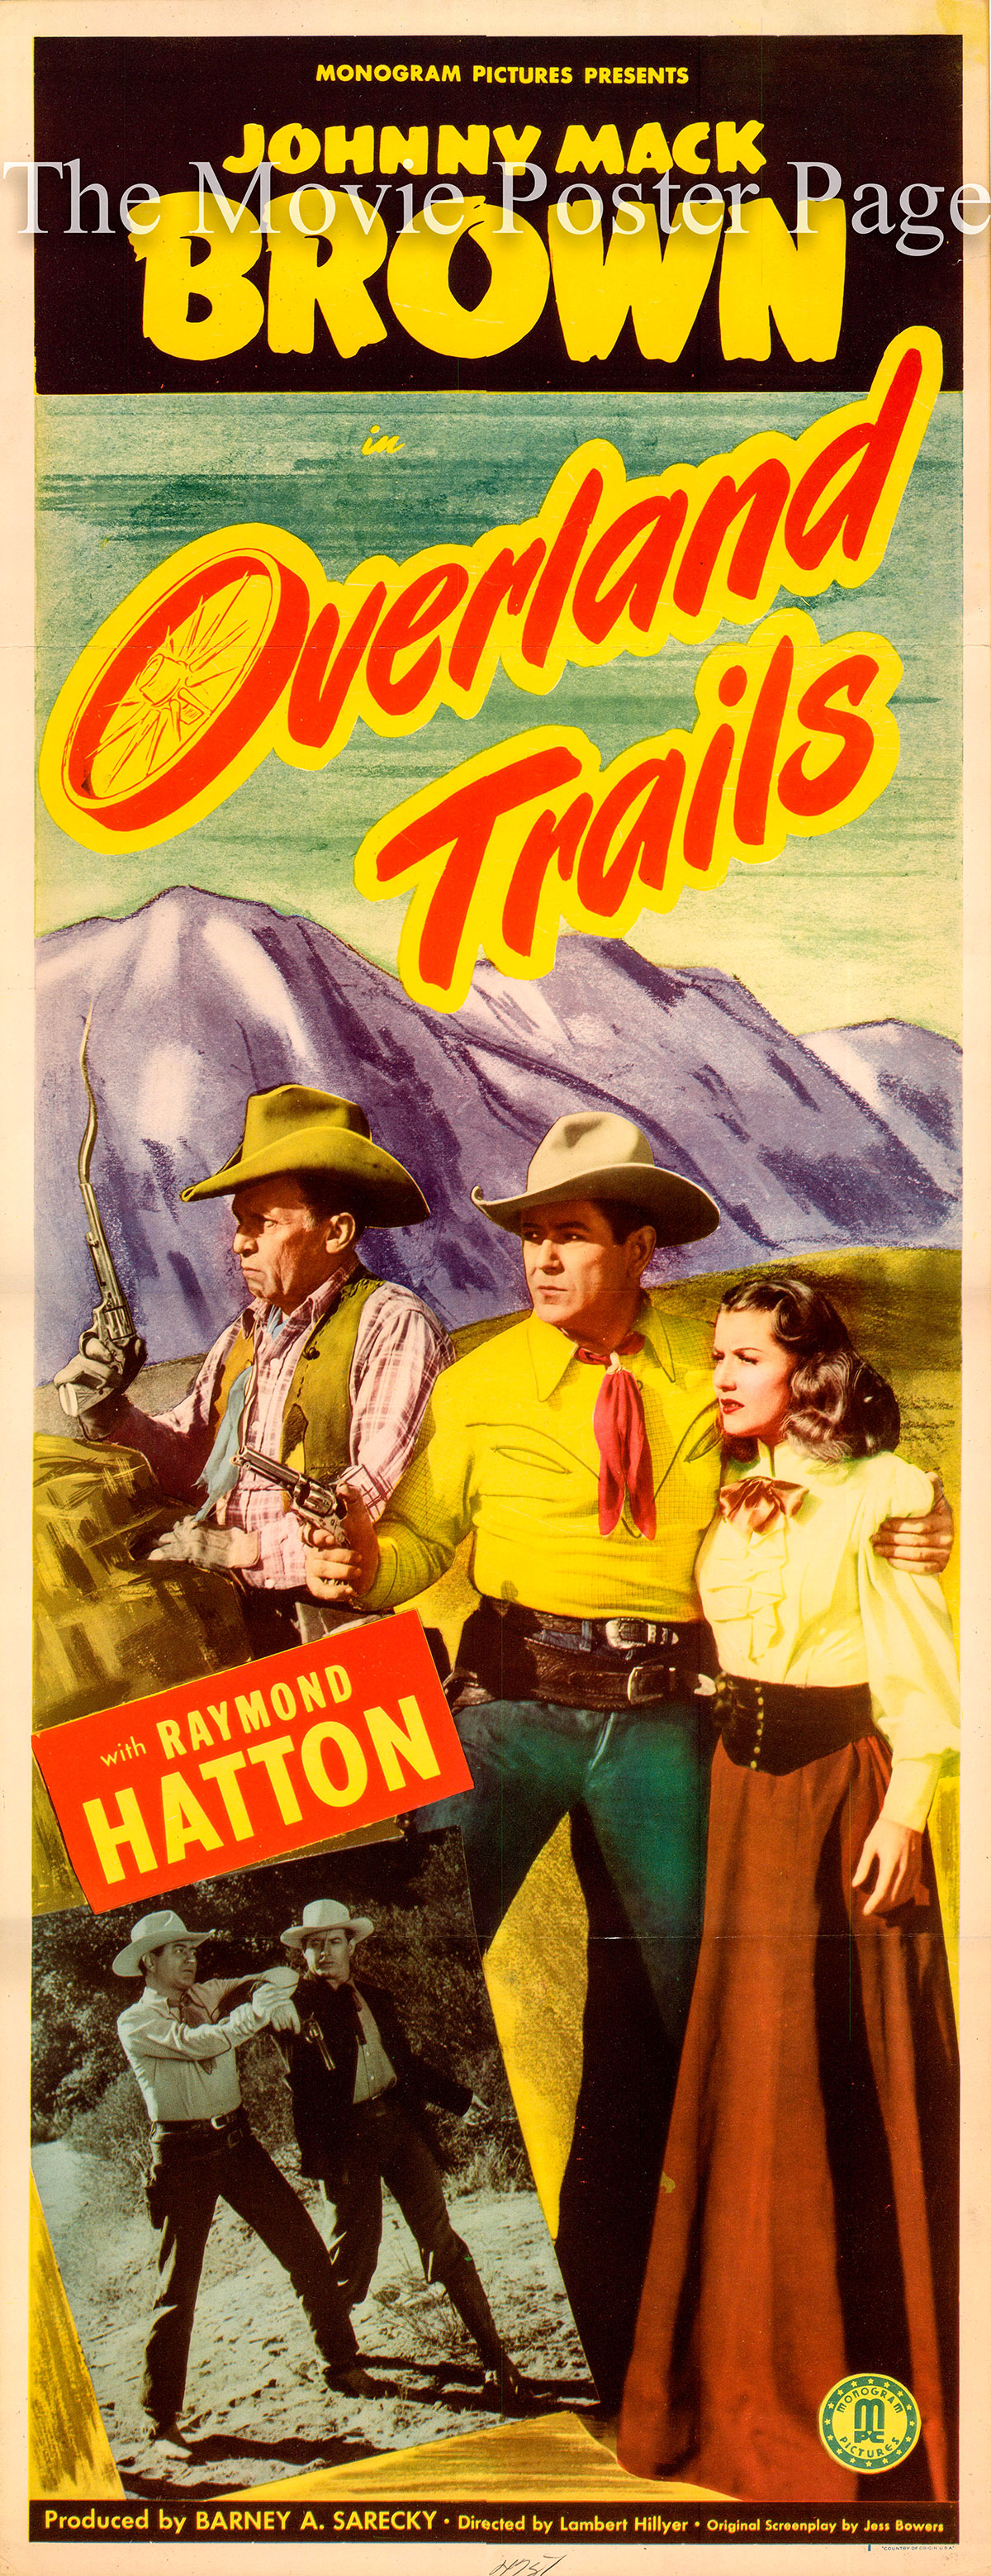 Pictured is a US insert promotional poster for the 1948 Lambert Hillyer film Overland Trails starring Johnny Mack Brown.